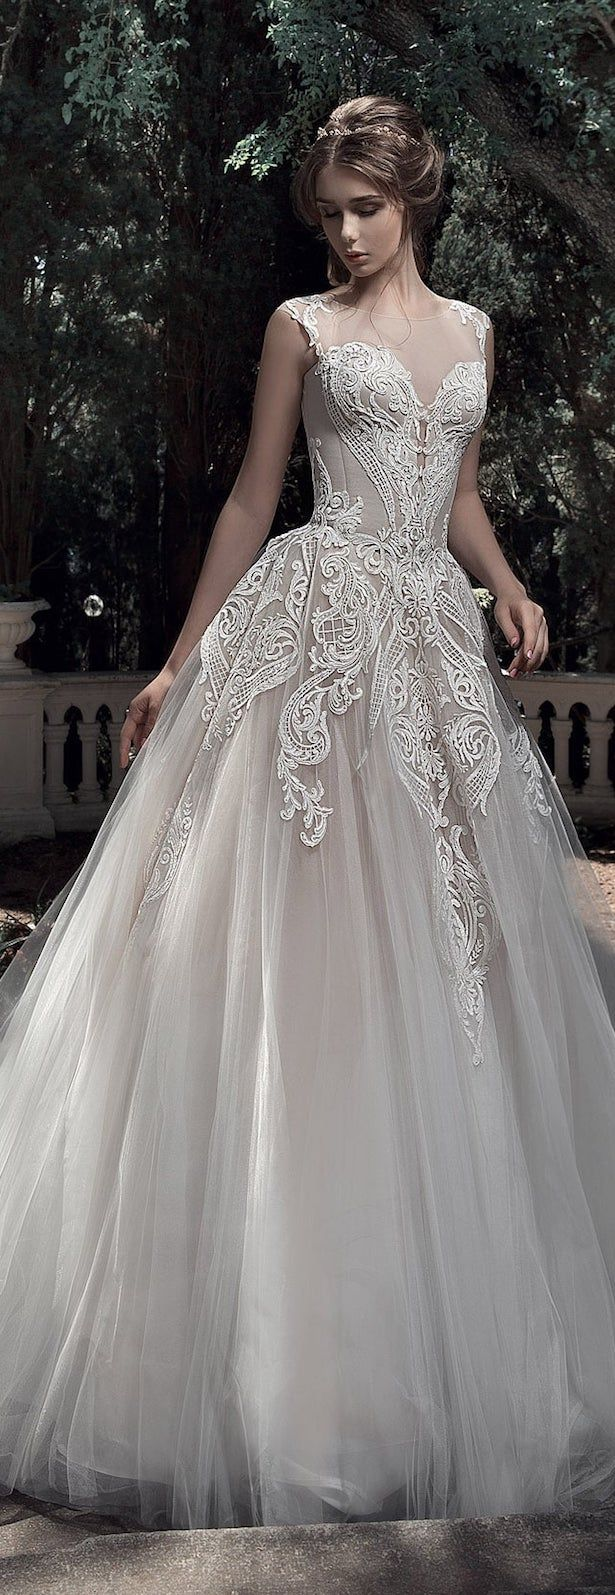 17 Best ideas about Wedding Dress Patterns on Pinterest | Wedding ...